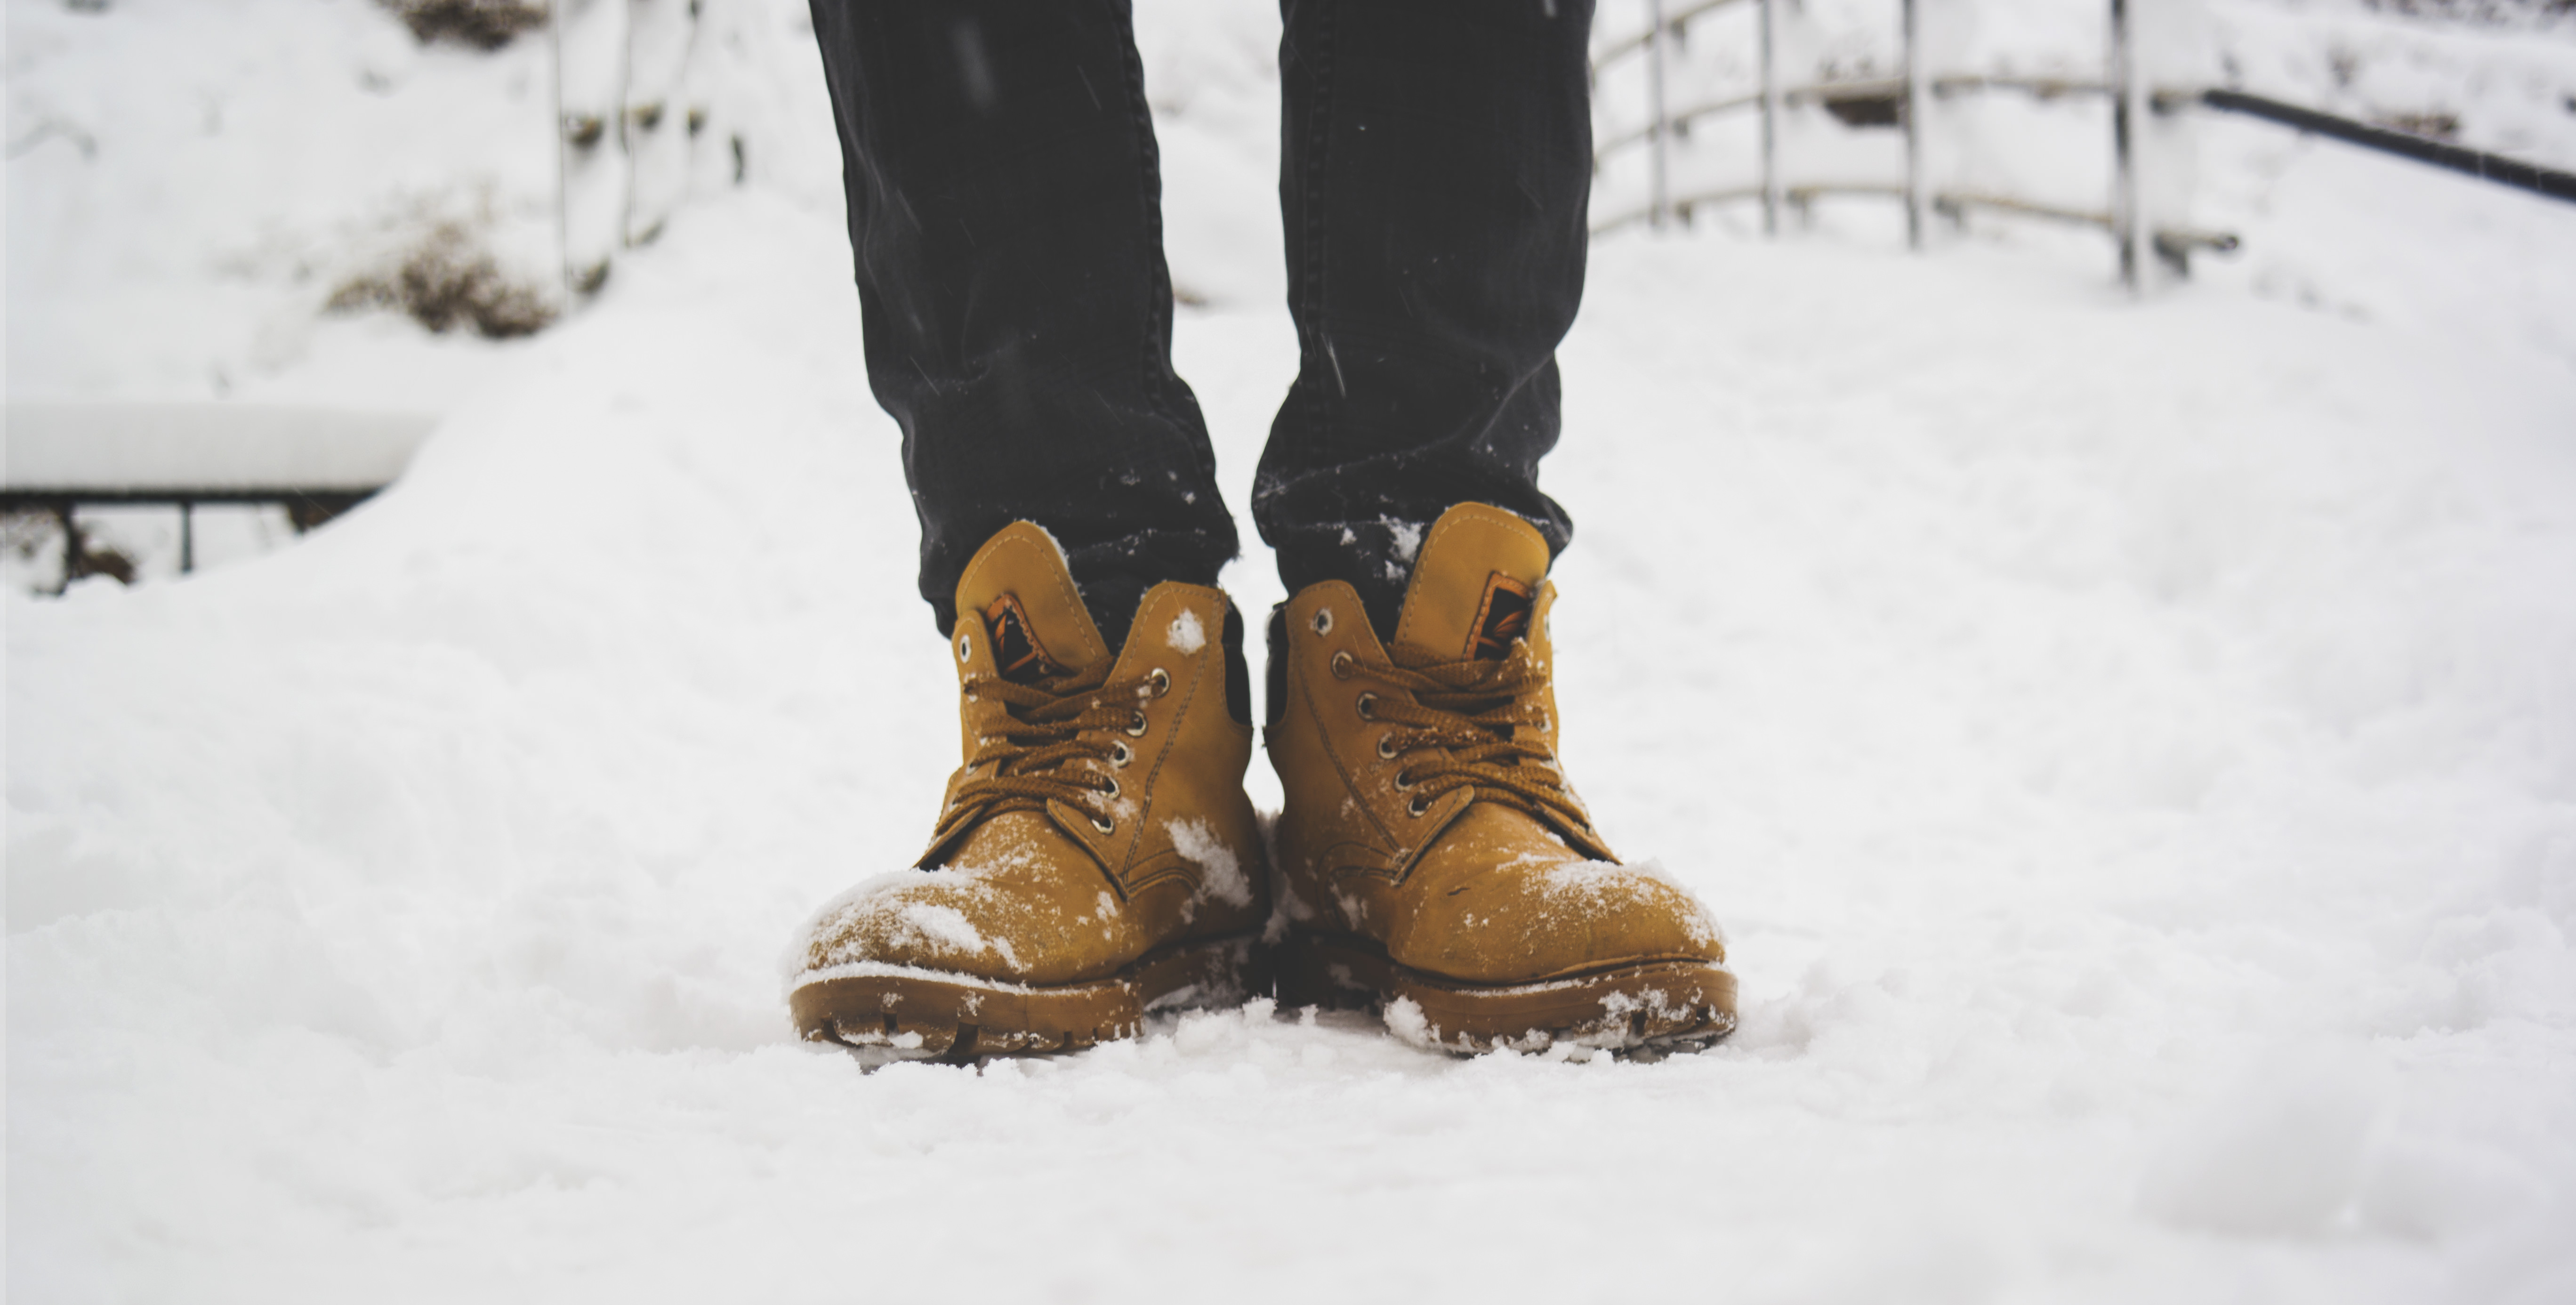 An image showing boots of a man who is stood in snow